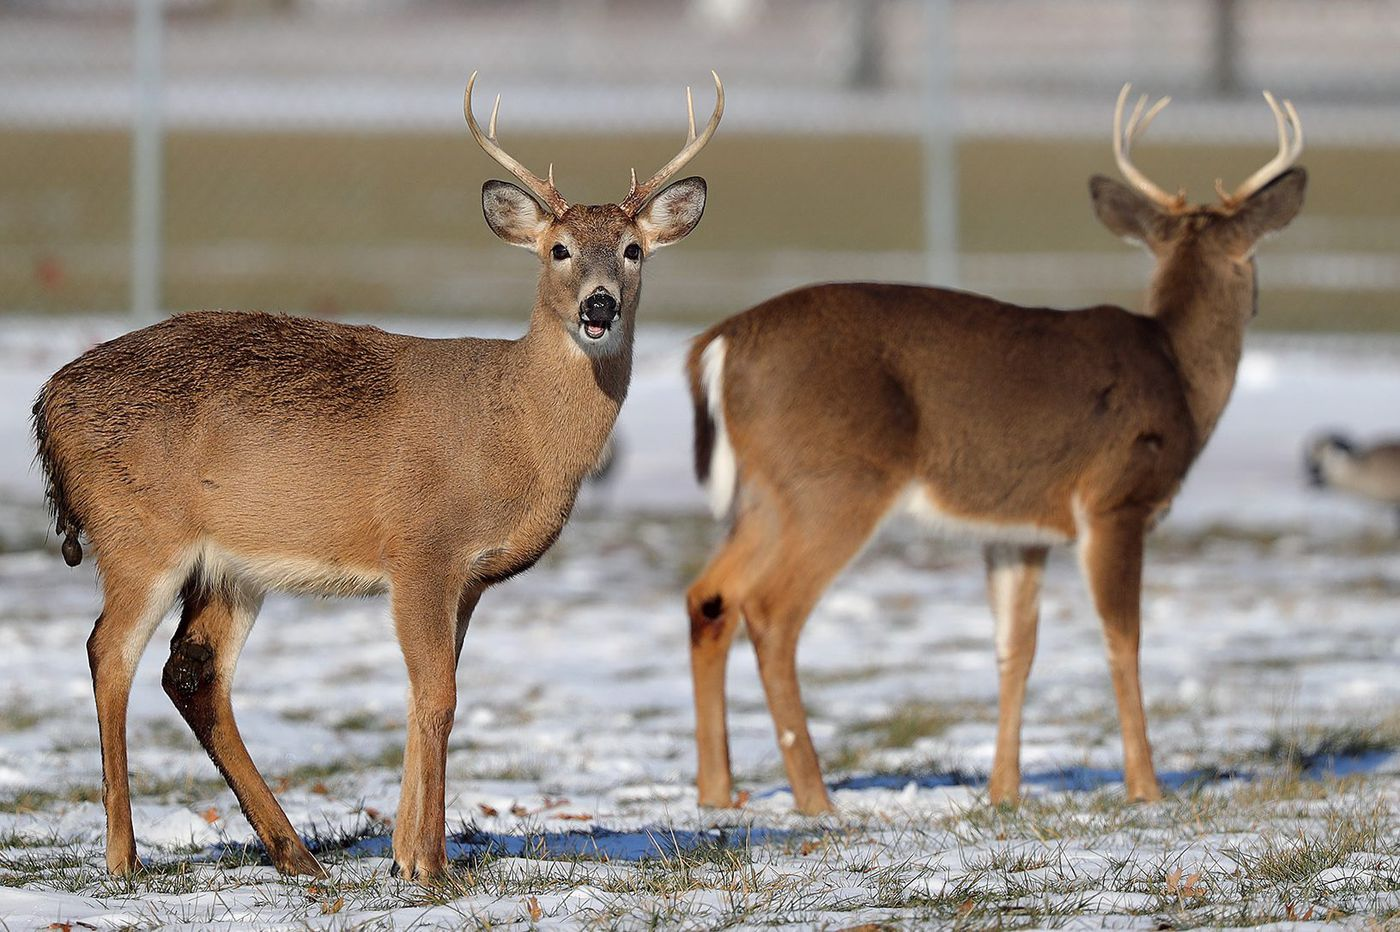 Disease is killing deer in S.E. Pennsylvania